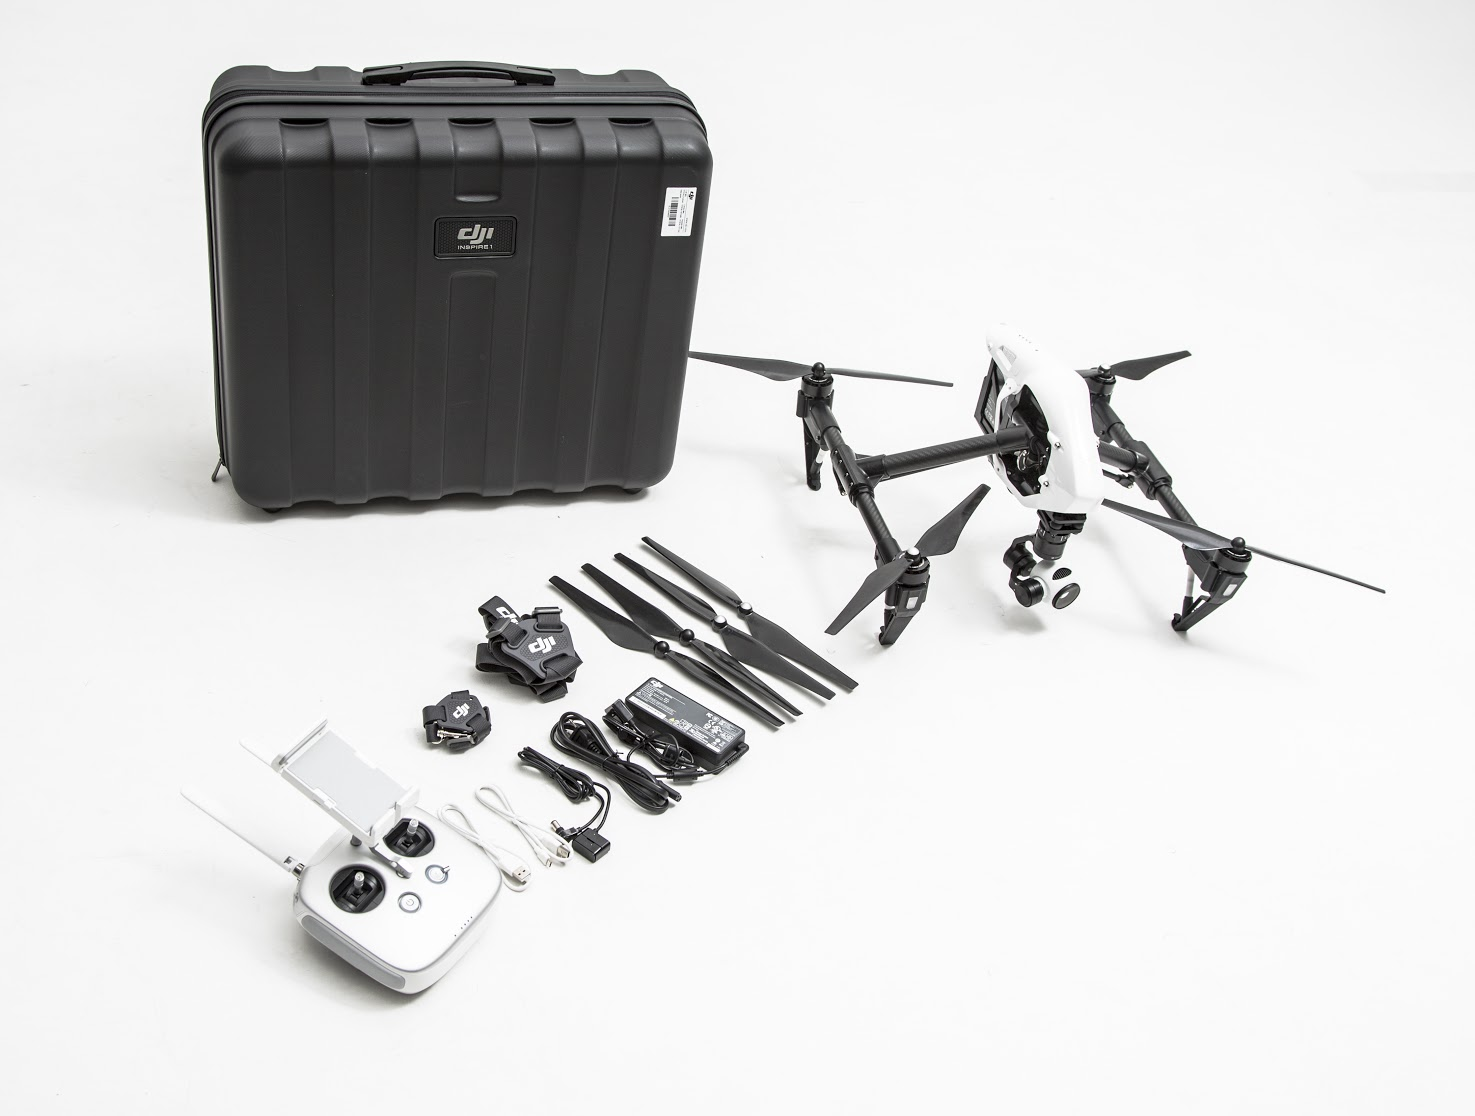 DJI Inspire 1 Dual Controller contents and case uk stock